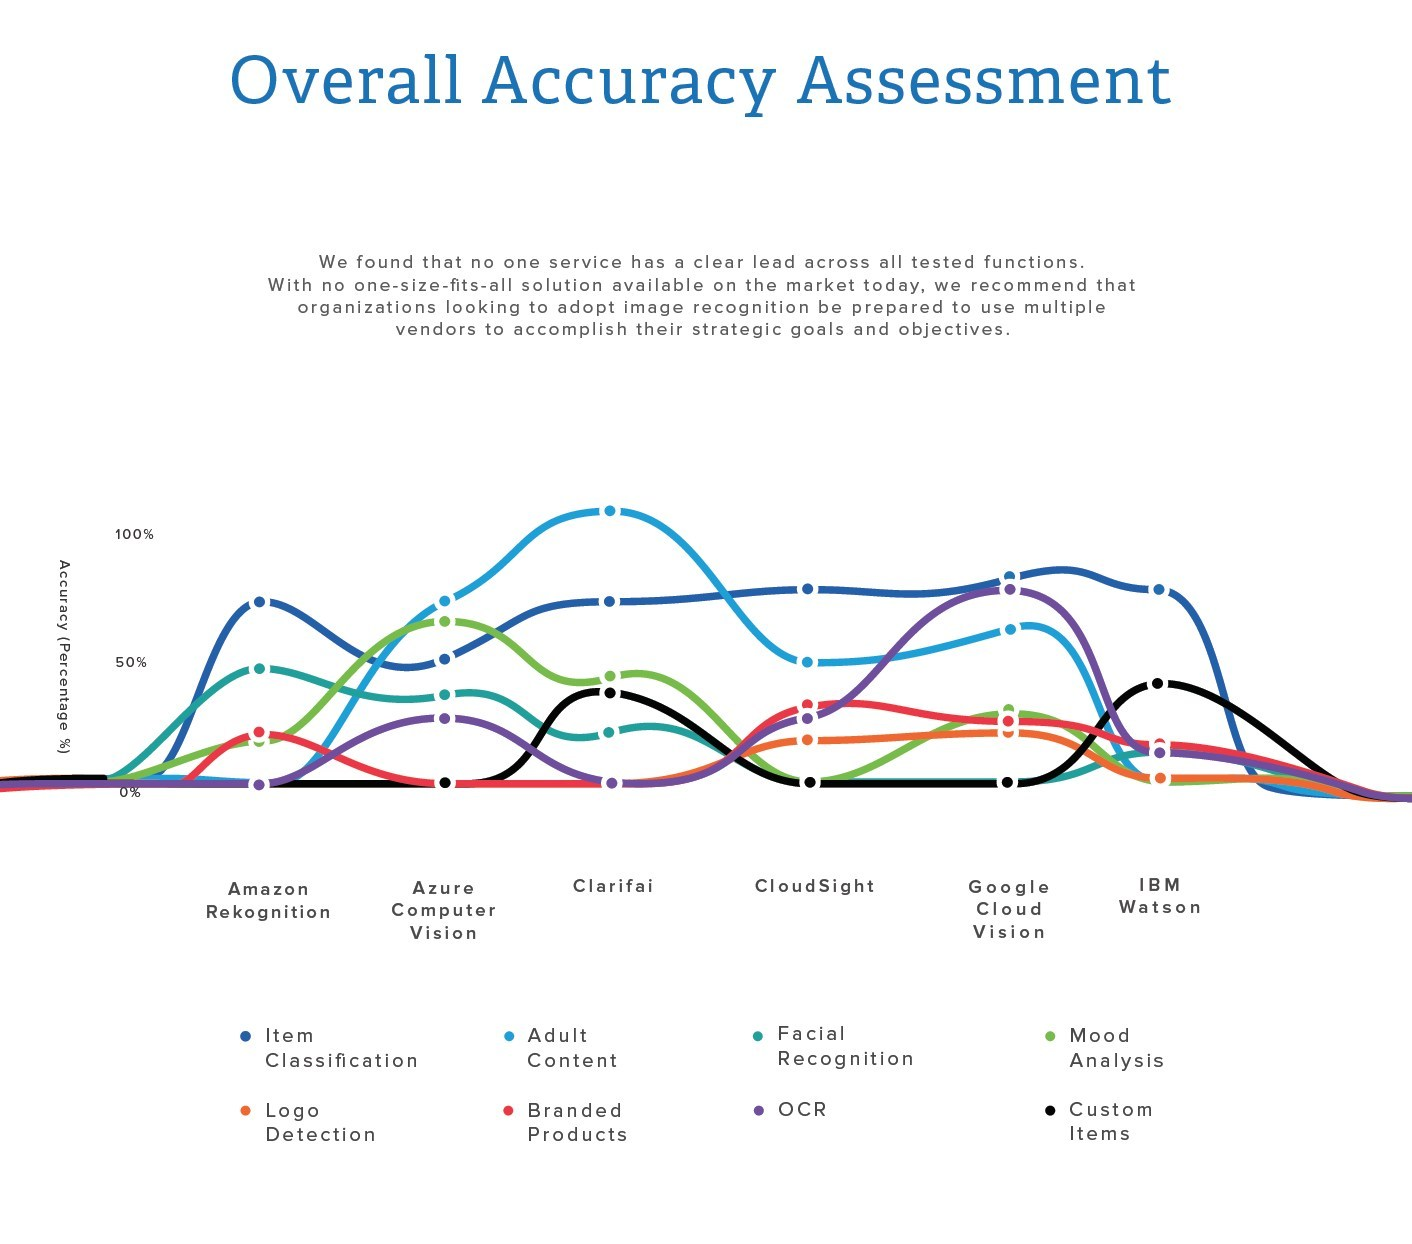 Unbiased Image Recognition Services Vendor Assessment: Overall Accuracy Assessment - CapTech found that no one service has a clear lead across all tested functions. With no one-size-fits-all solution available on the market today, we recommend that organizations looking to adopt image recognition be prepared to use multiple vendors to accomplish their goals. Accuracy refers to how correct the answer is.